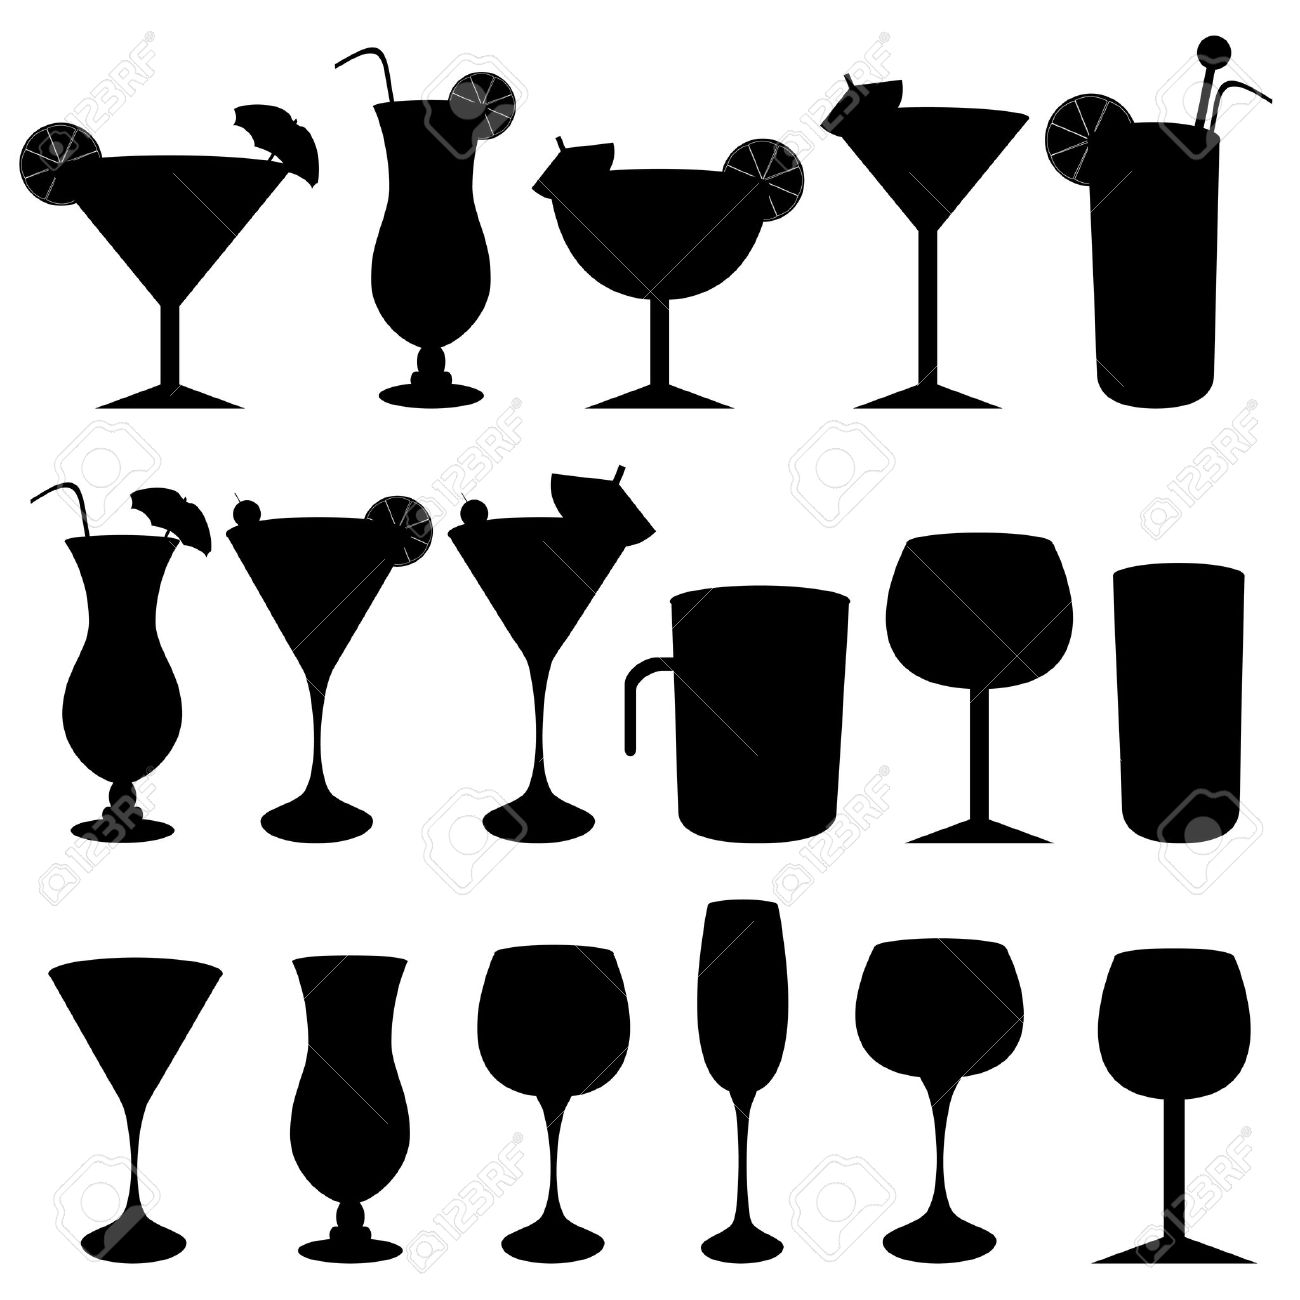 Alcoholic drinks, cocktails and glasses.